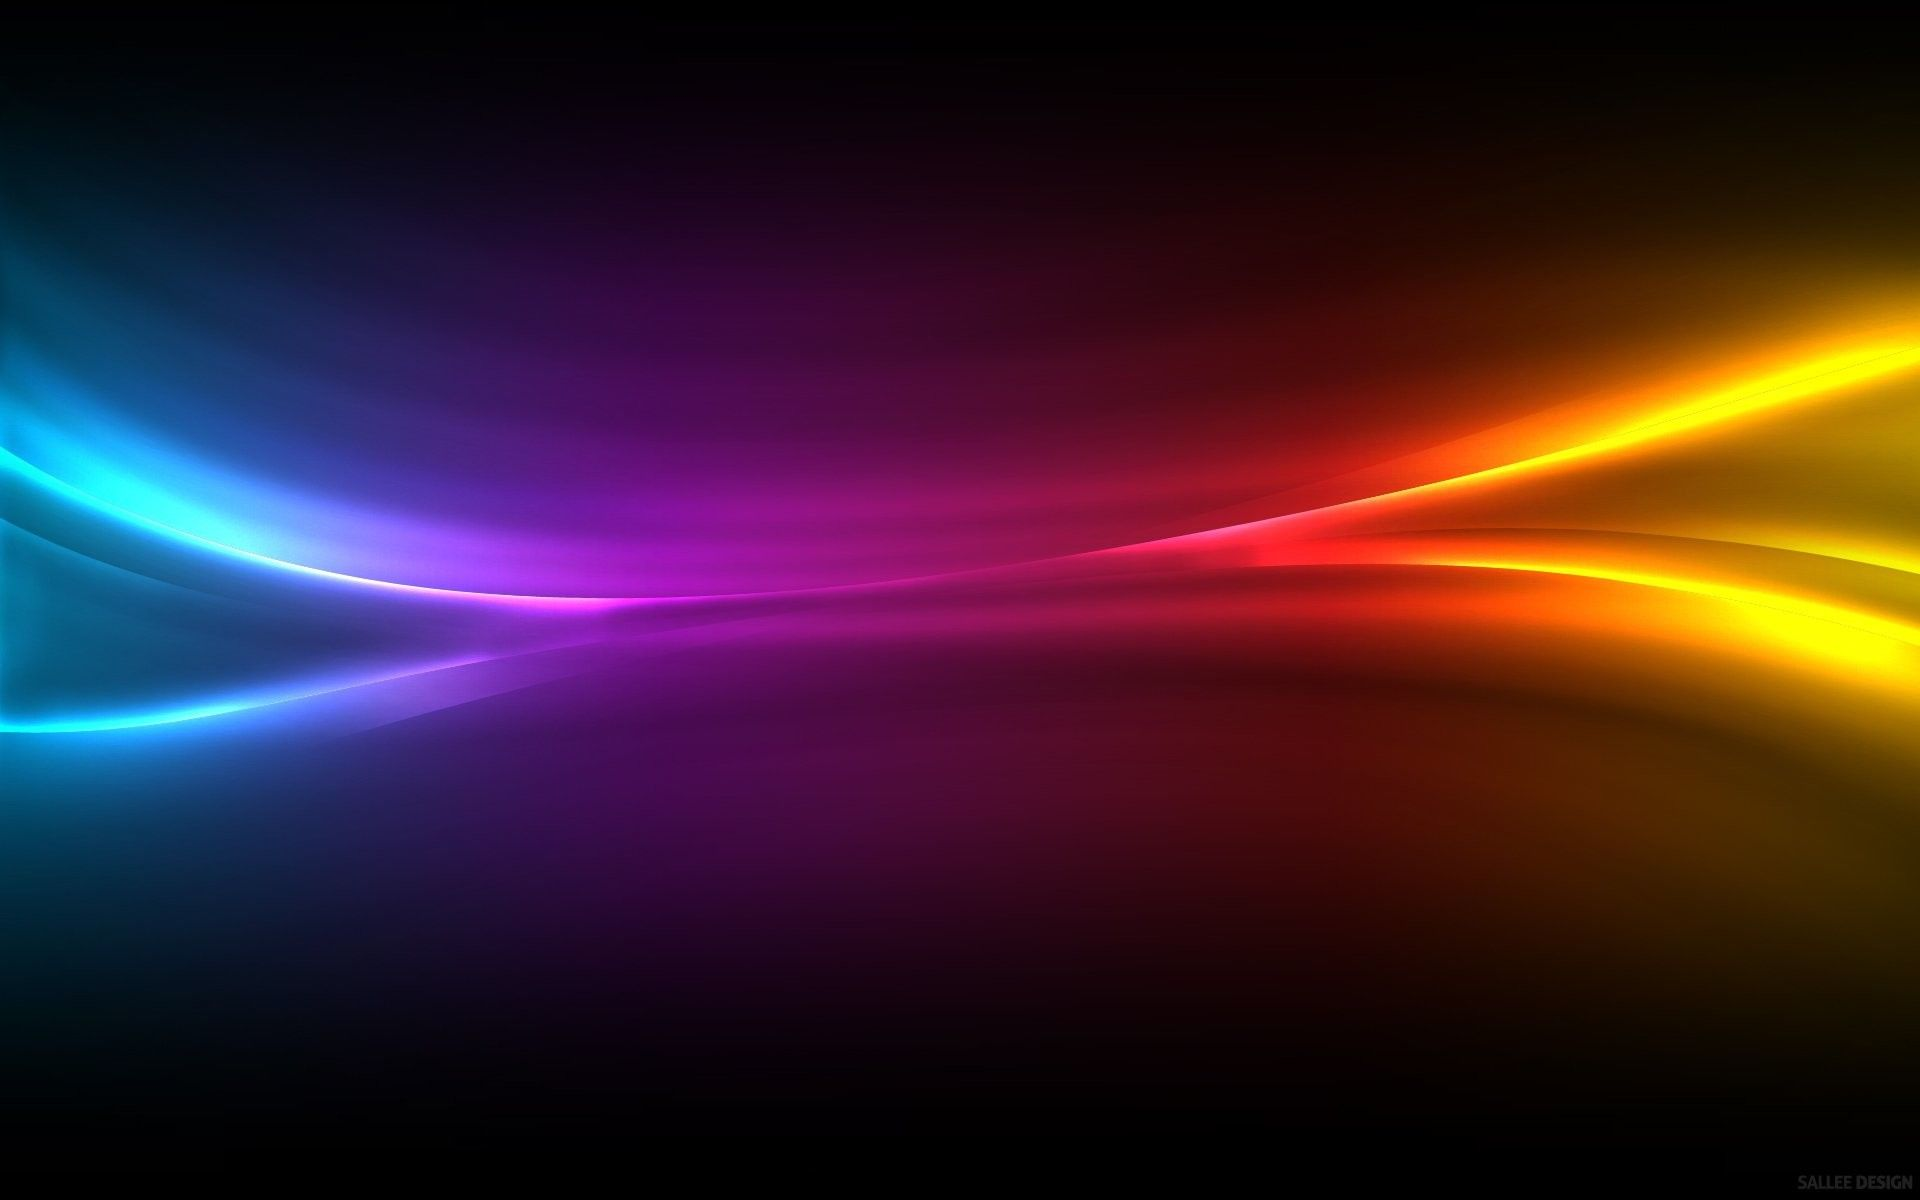 Res 1920x1200 Hd Wallpaper Background Image Id 76256